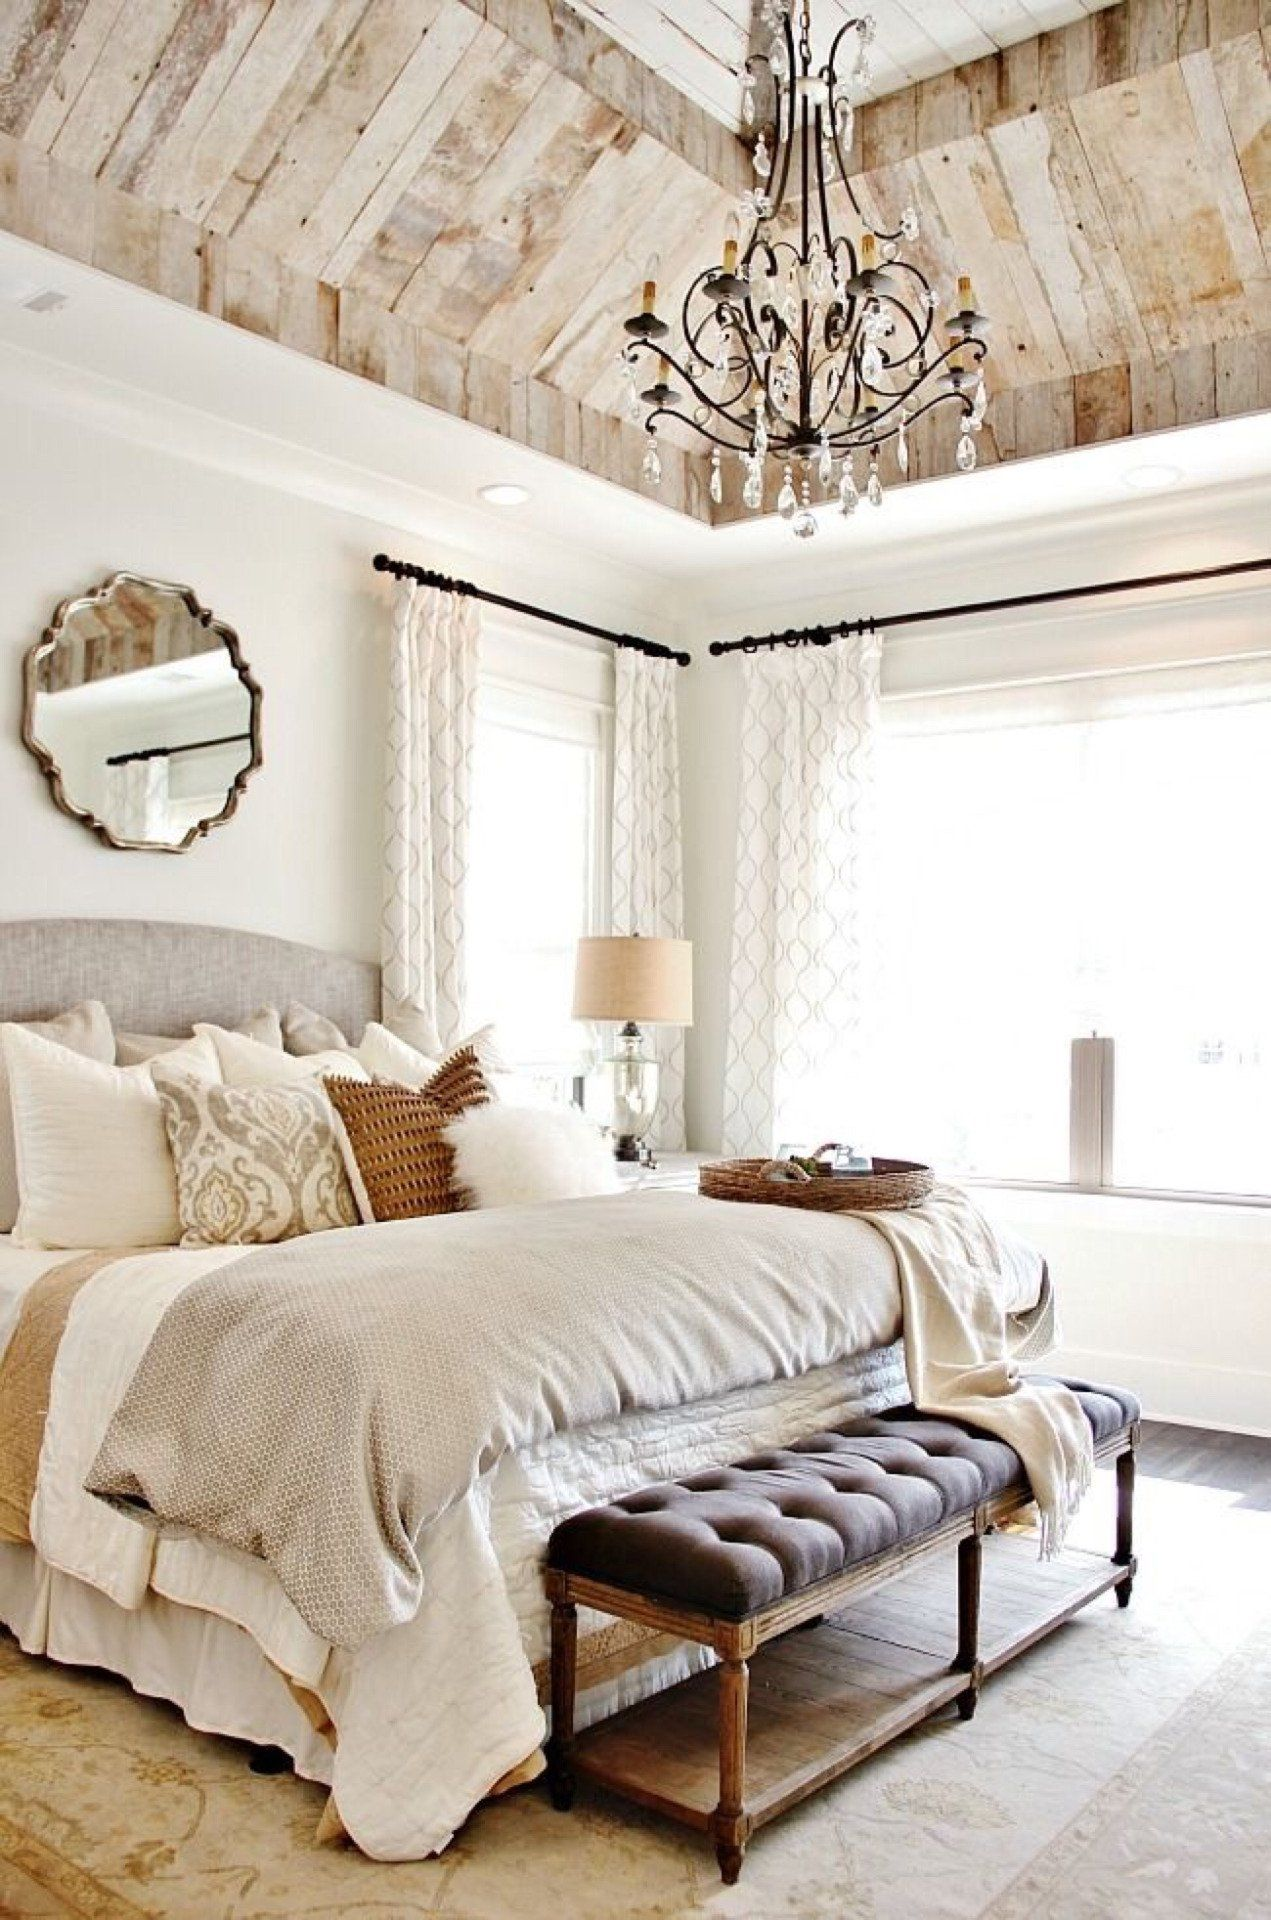 57 Awesome Design Ideas For Your Bedroom Modern Farmhouse BedroomCountry HomeFarmhouse Style